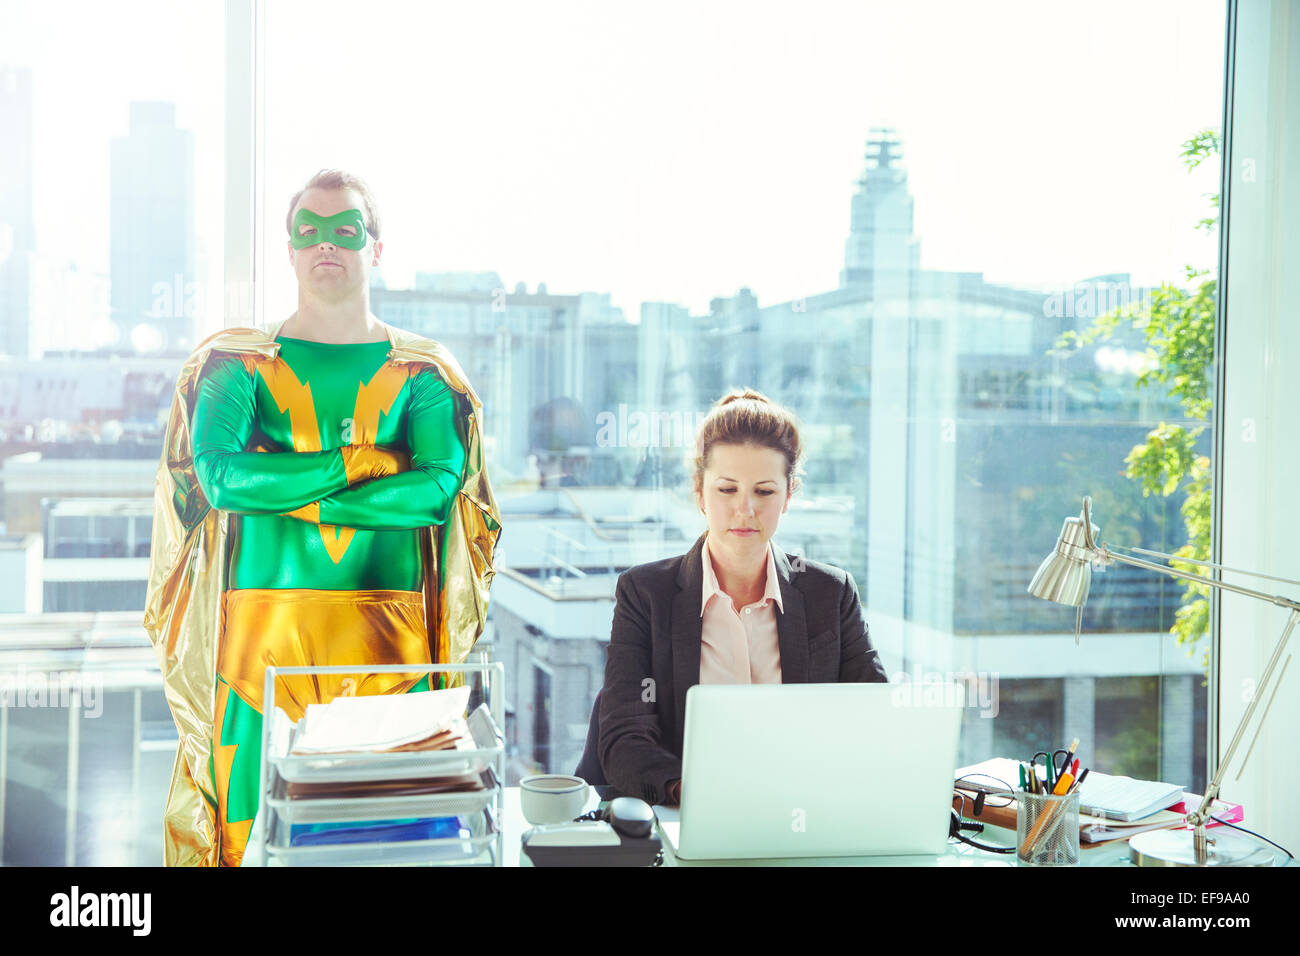 Superhero standing near businesswoman working in office - Stock Image